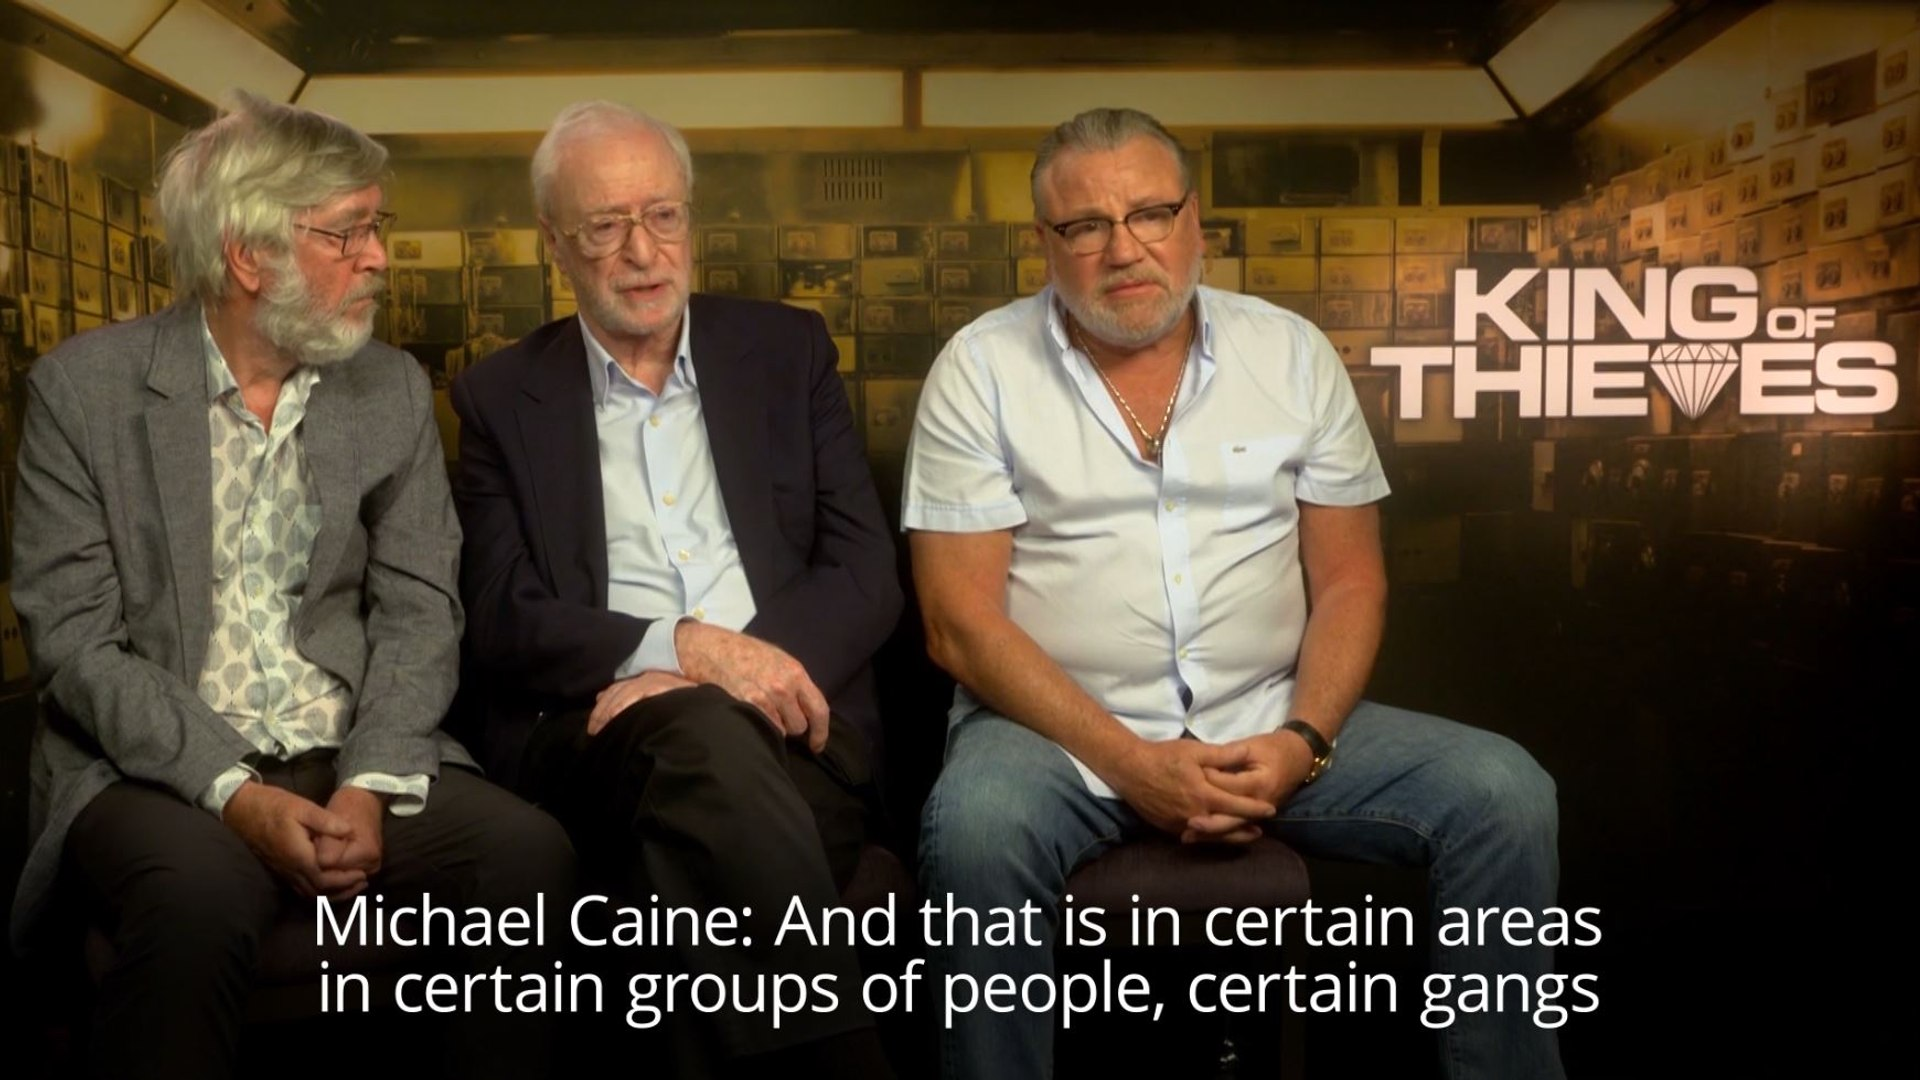 Sir Michael Caine calls police cuts 'unbelievable'